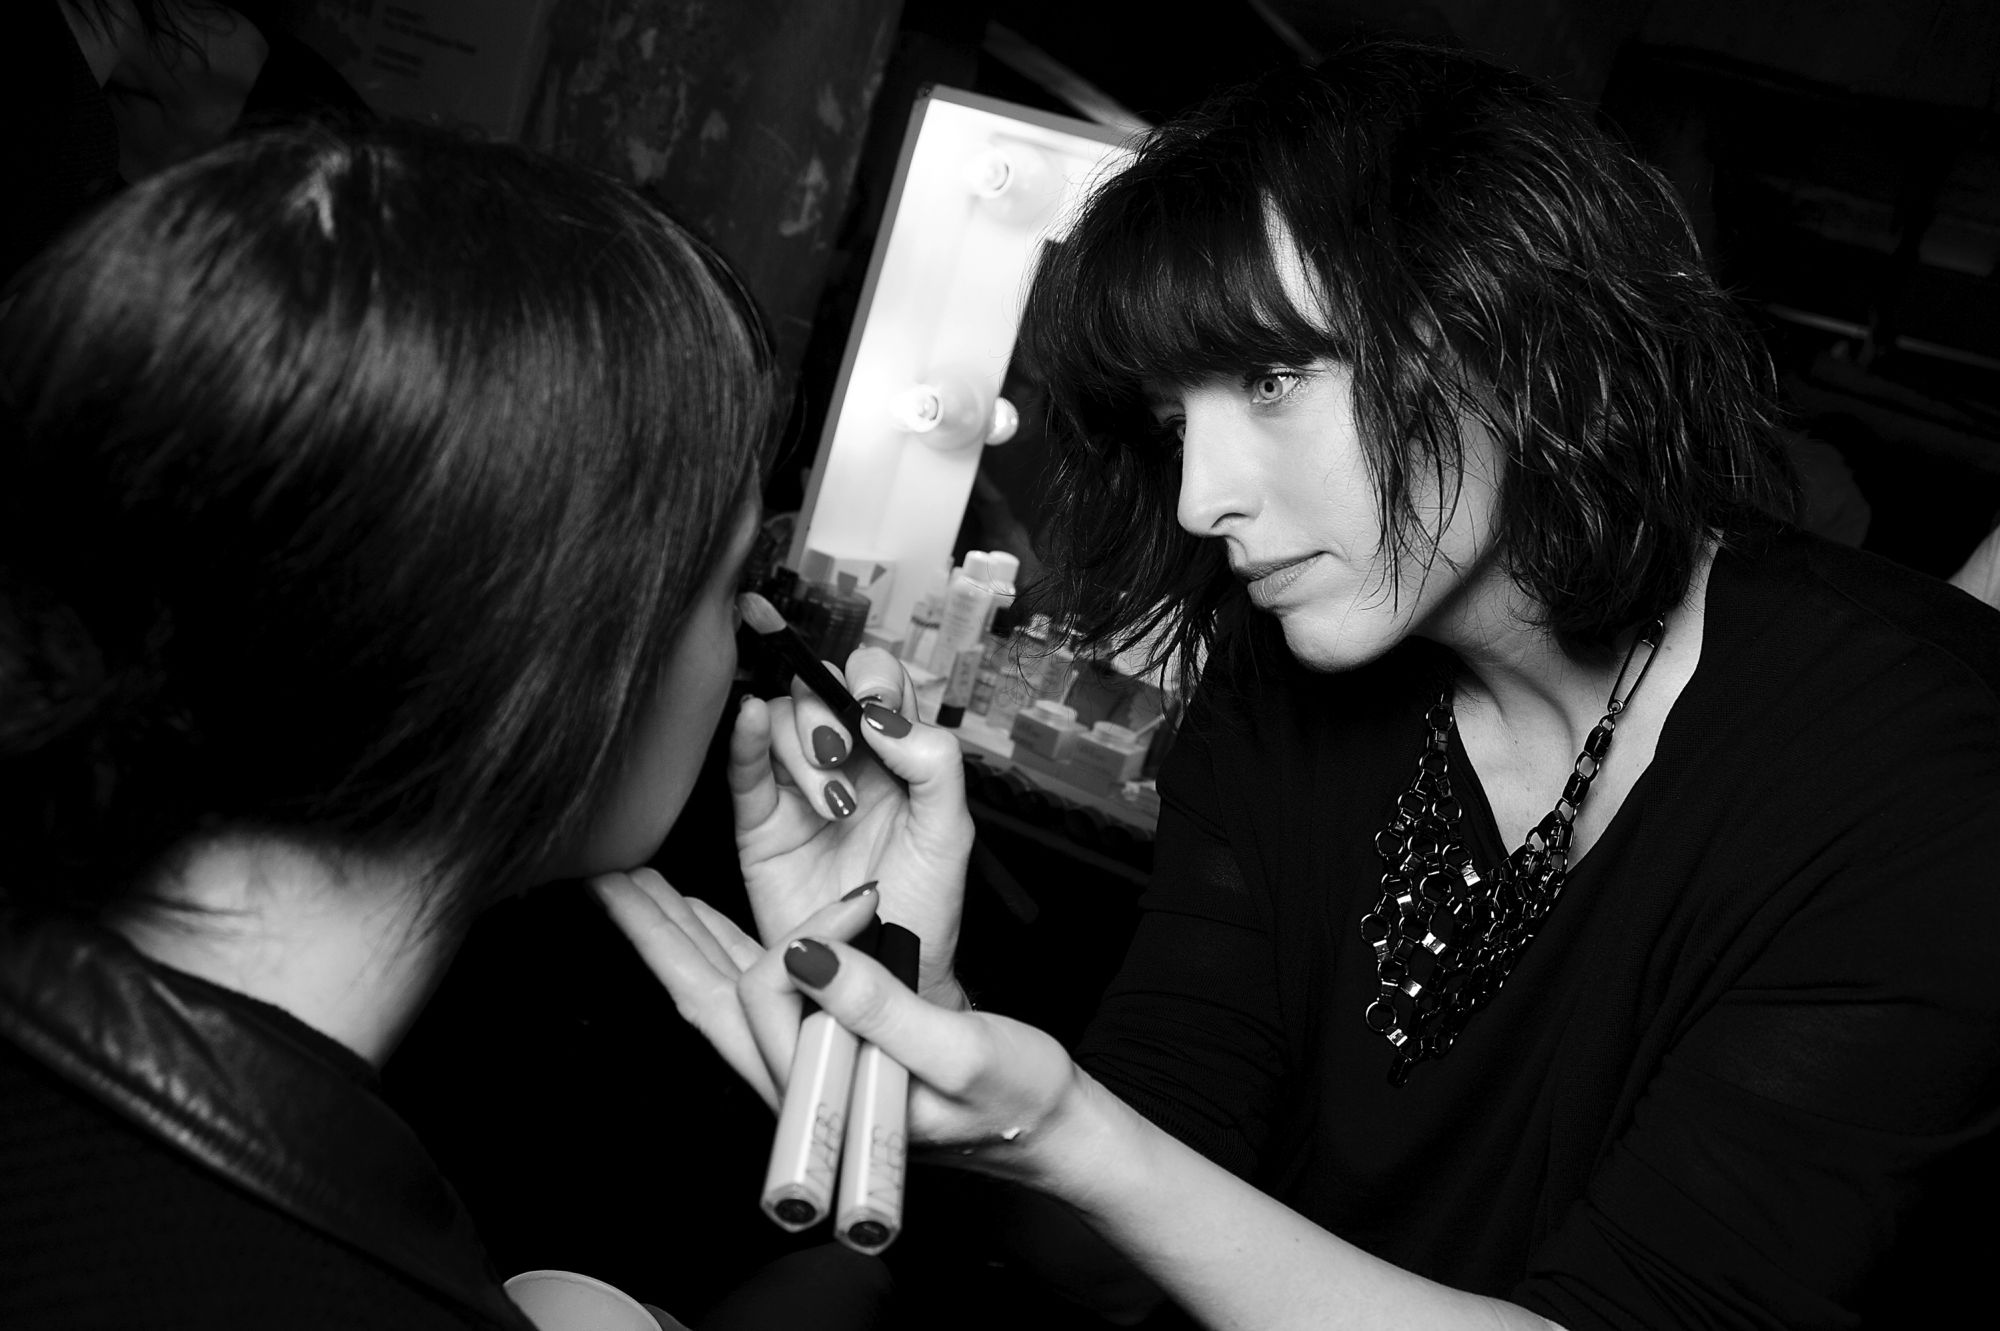 Global Artistic Director, Jane Richardson, backstage prepping models for a fashion show. Photo: Courtesy of NARS Cosmetics